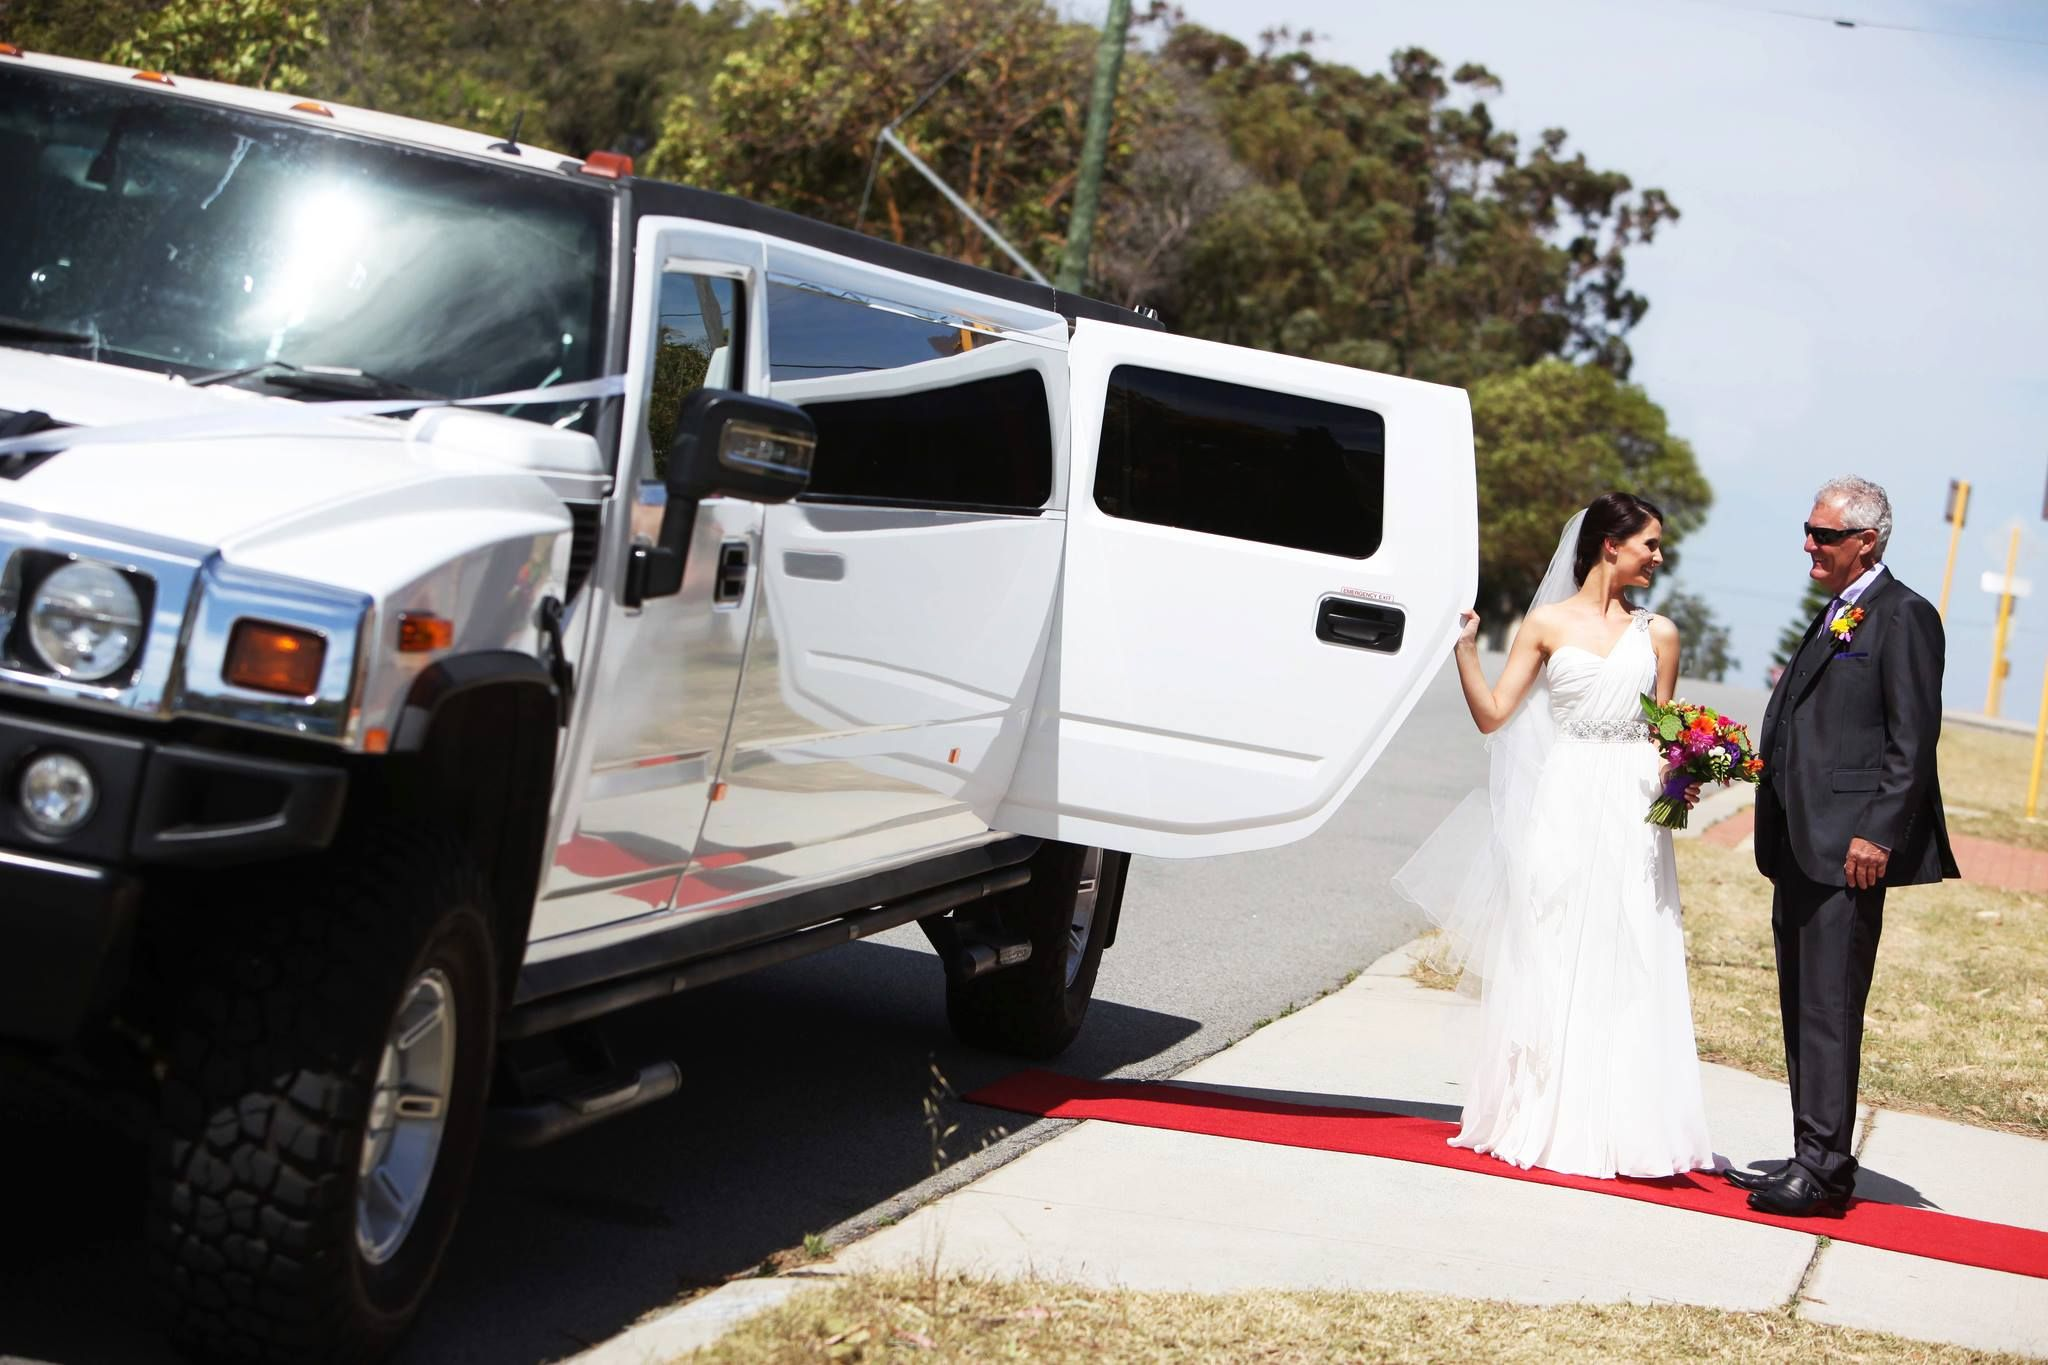 Most of transportation agency offering Services for limousine